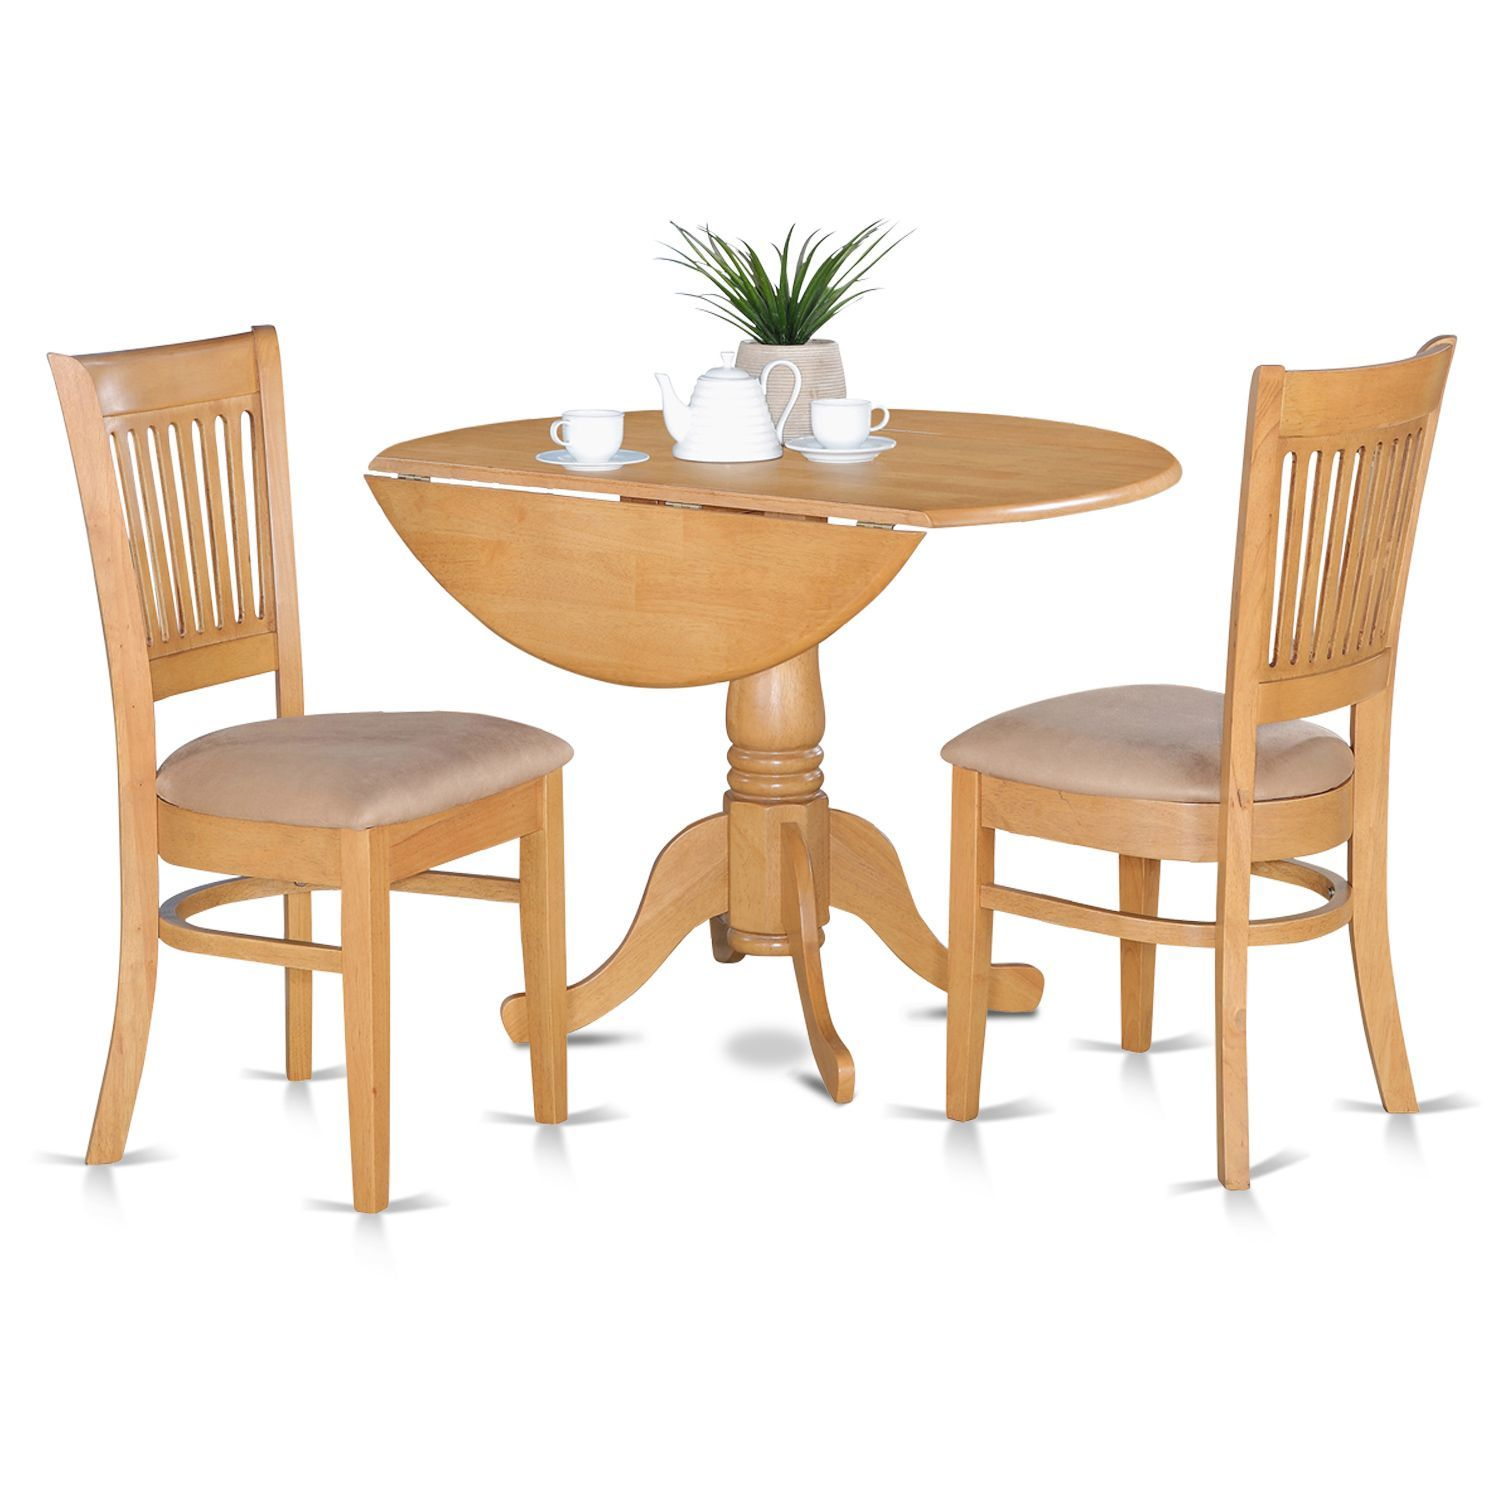 Oak Kitchen Table And 2 Slat Back Chairs 3Piece Dining Set Interesting 2 Piece Dining Room Set Design Inspiration